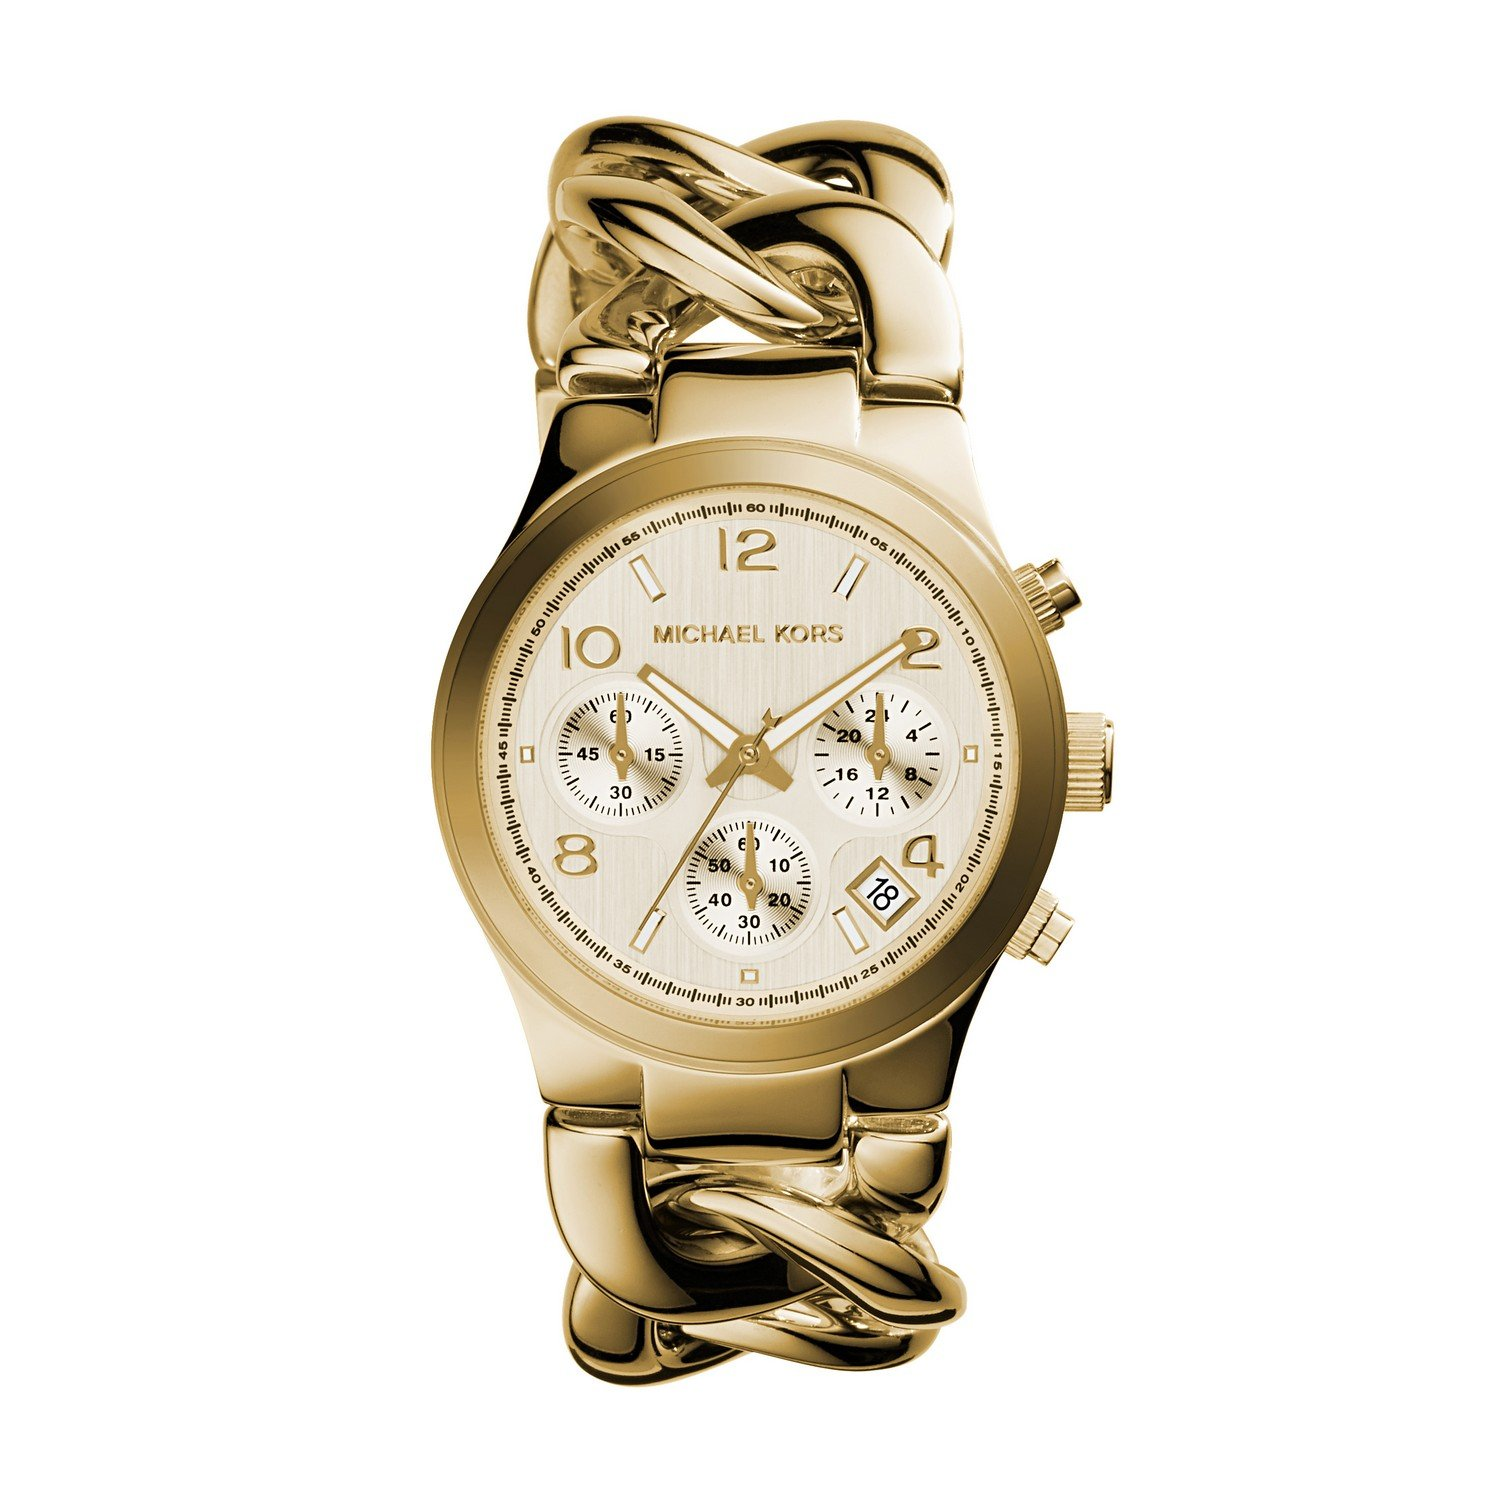 80d5abd1b7ad5 Amazon.com  Michael Kors Women s Runway Gold-Tone Watch MK3131  Michael Kors   Watches